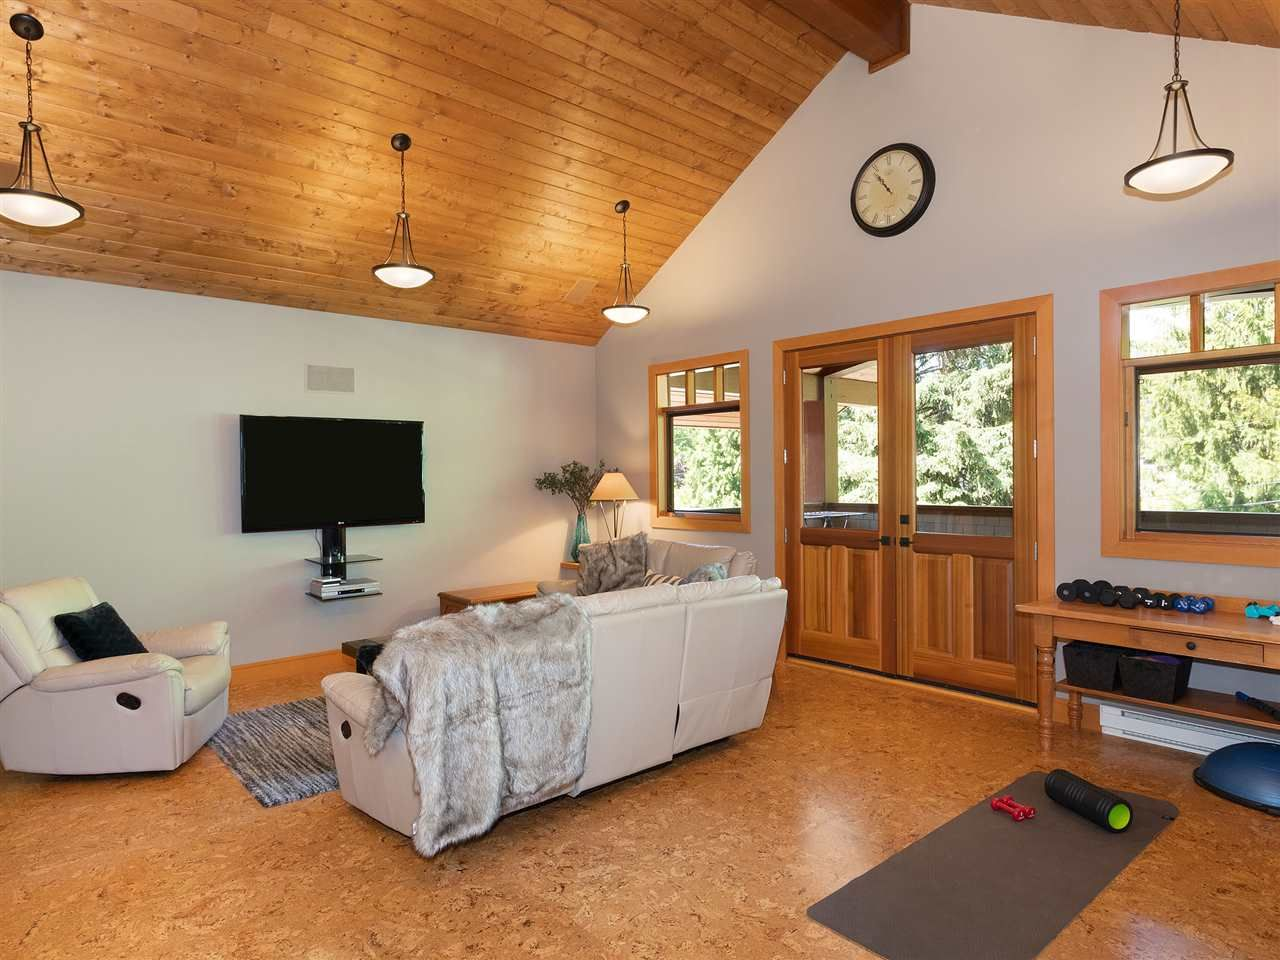 Photo 25: Photos: 3217 ARCHIBALD WAY in Whistler: Alta Vista House for sale : MLS®# R2468991